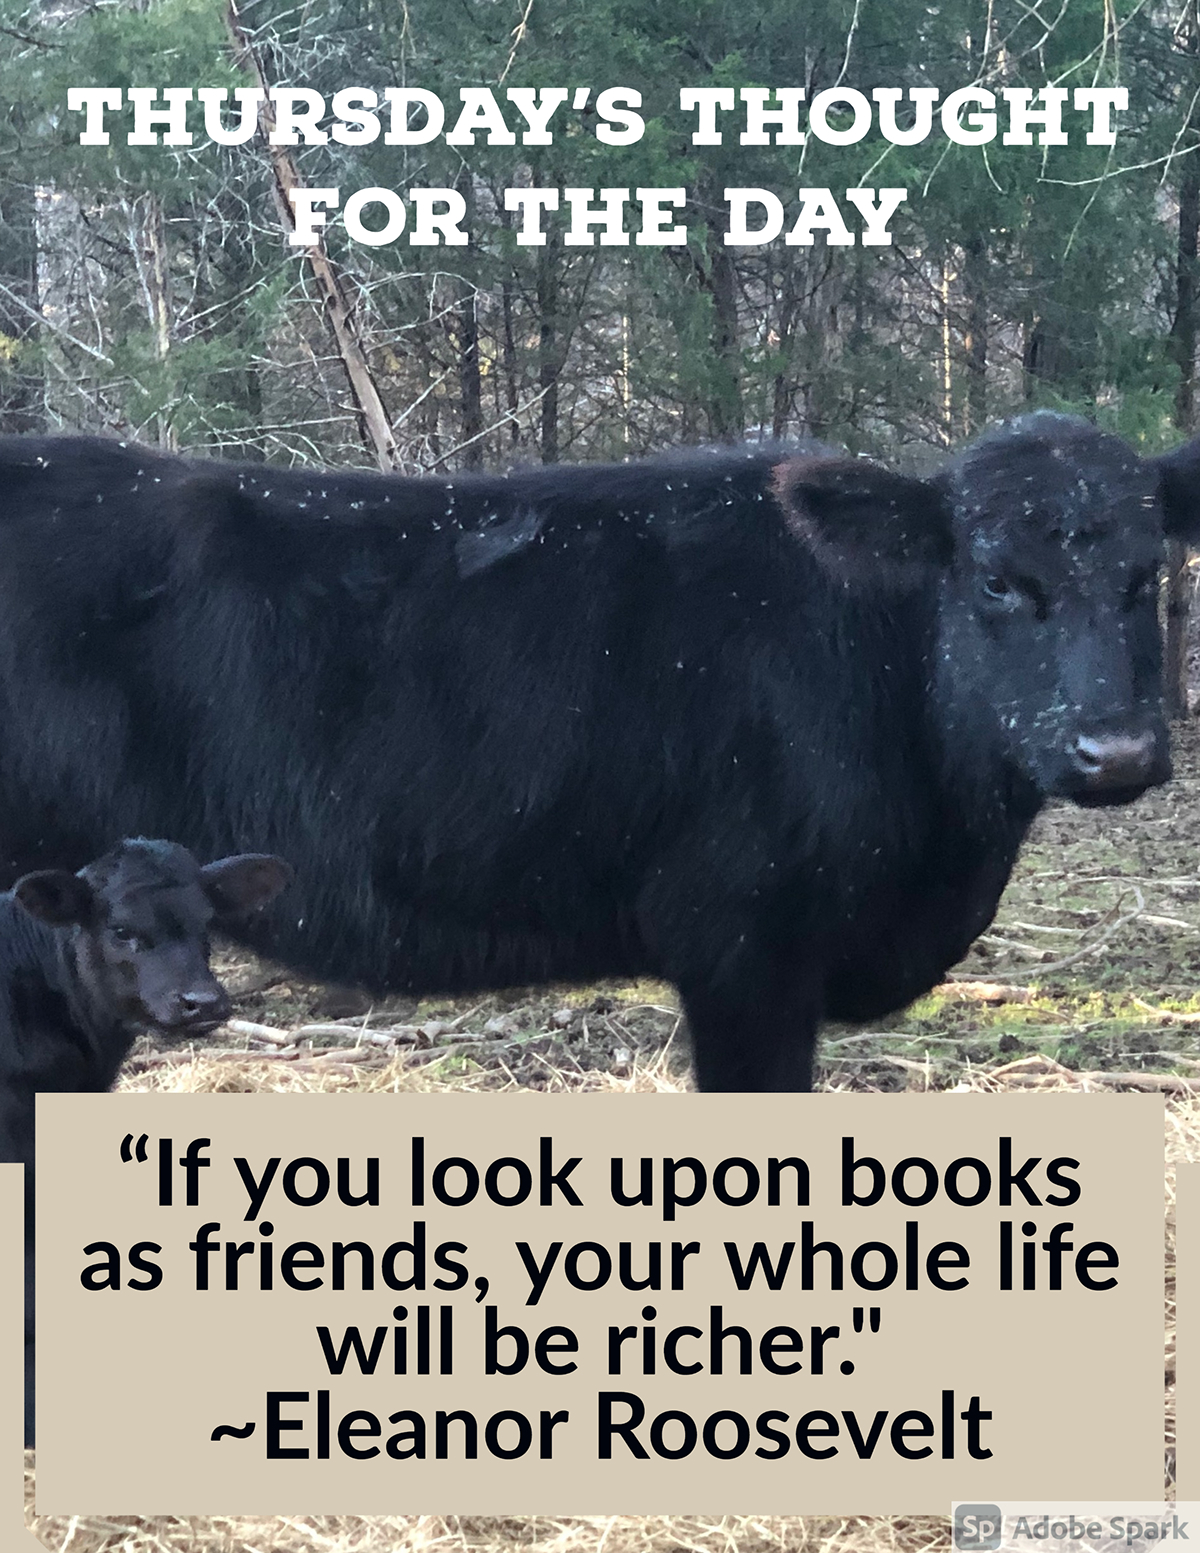 """Thursday's Thought for the Day Thursday's Thought for the Day """"If you look upon books as friends, your whole life will be richer."""" ~Eleanor Roosevelt"""